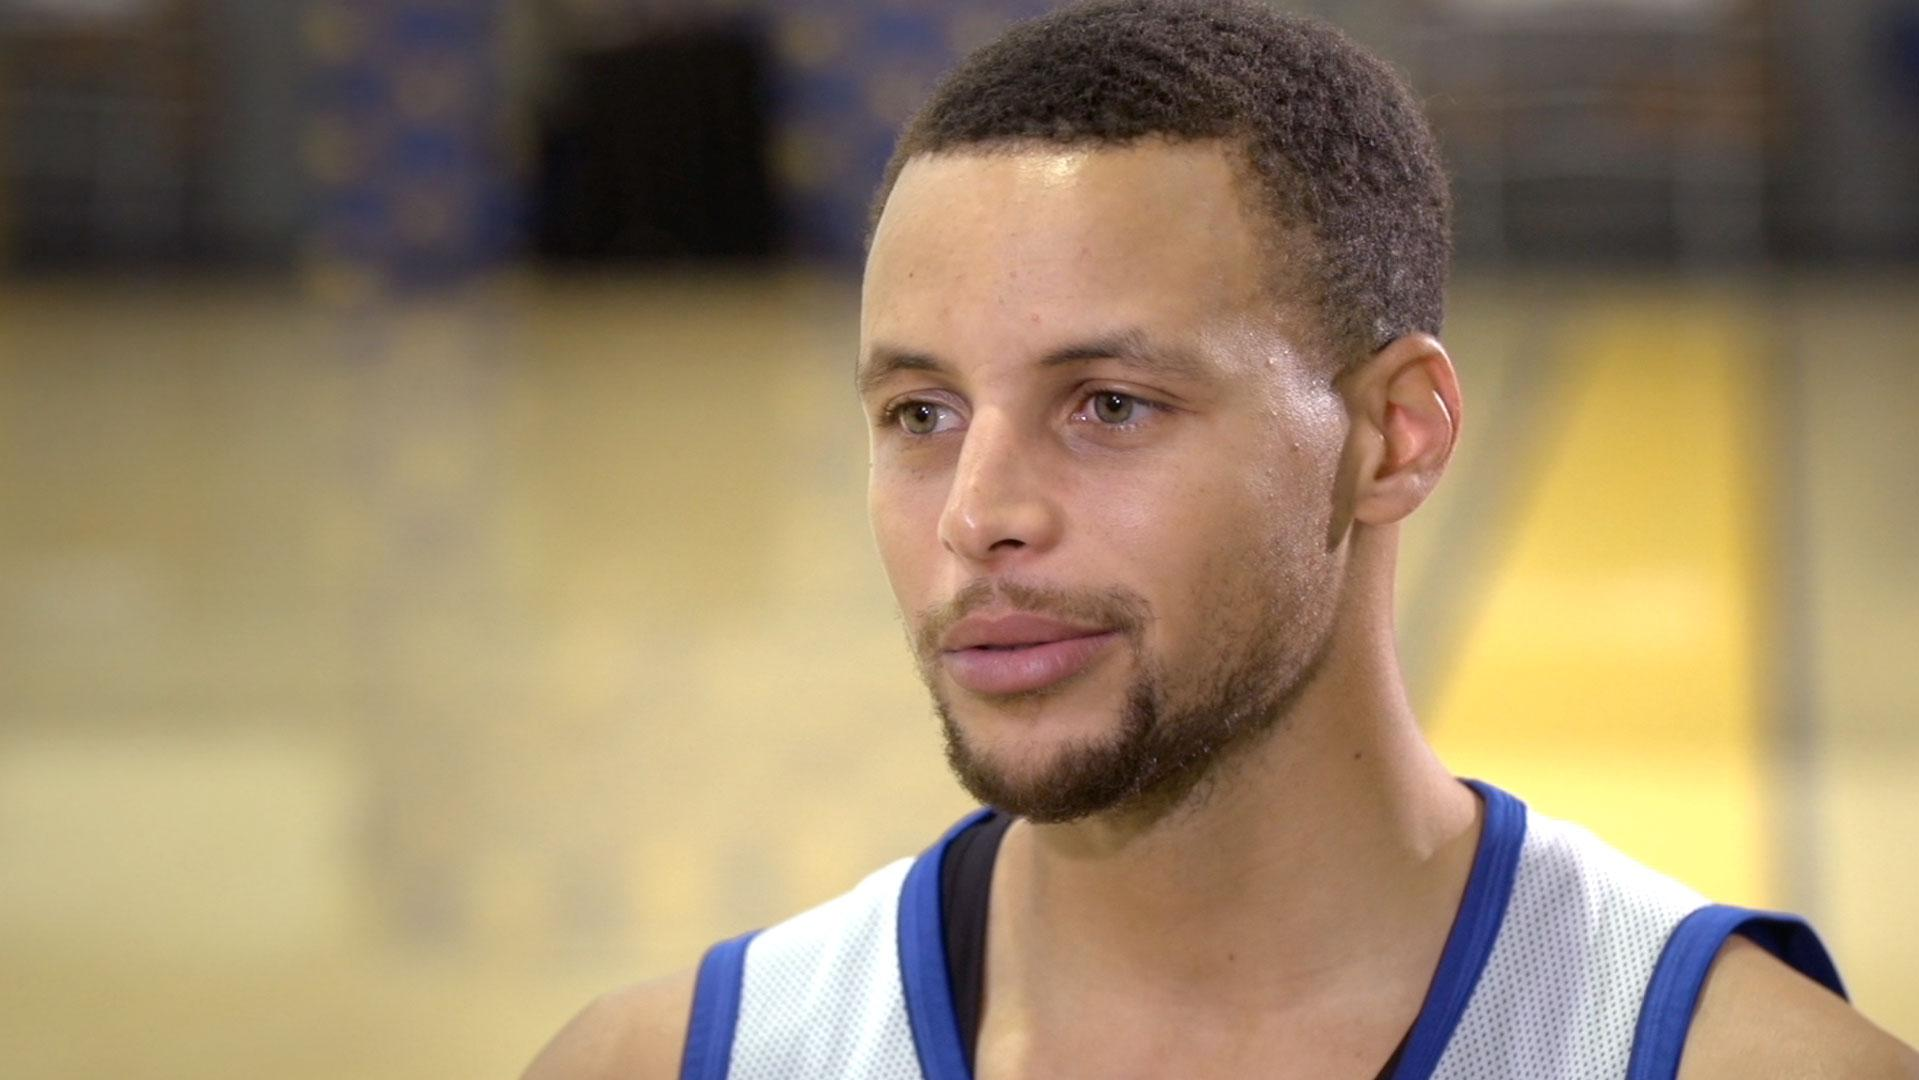 Nba Mvp Stephen Curry Maintains Disciplined Focus On Life